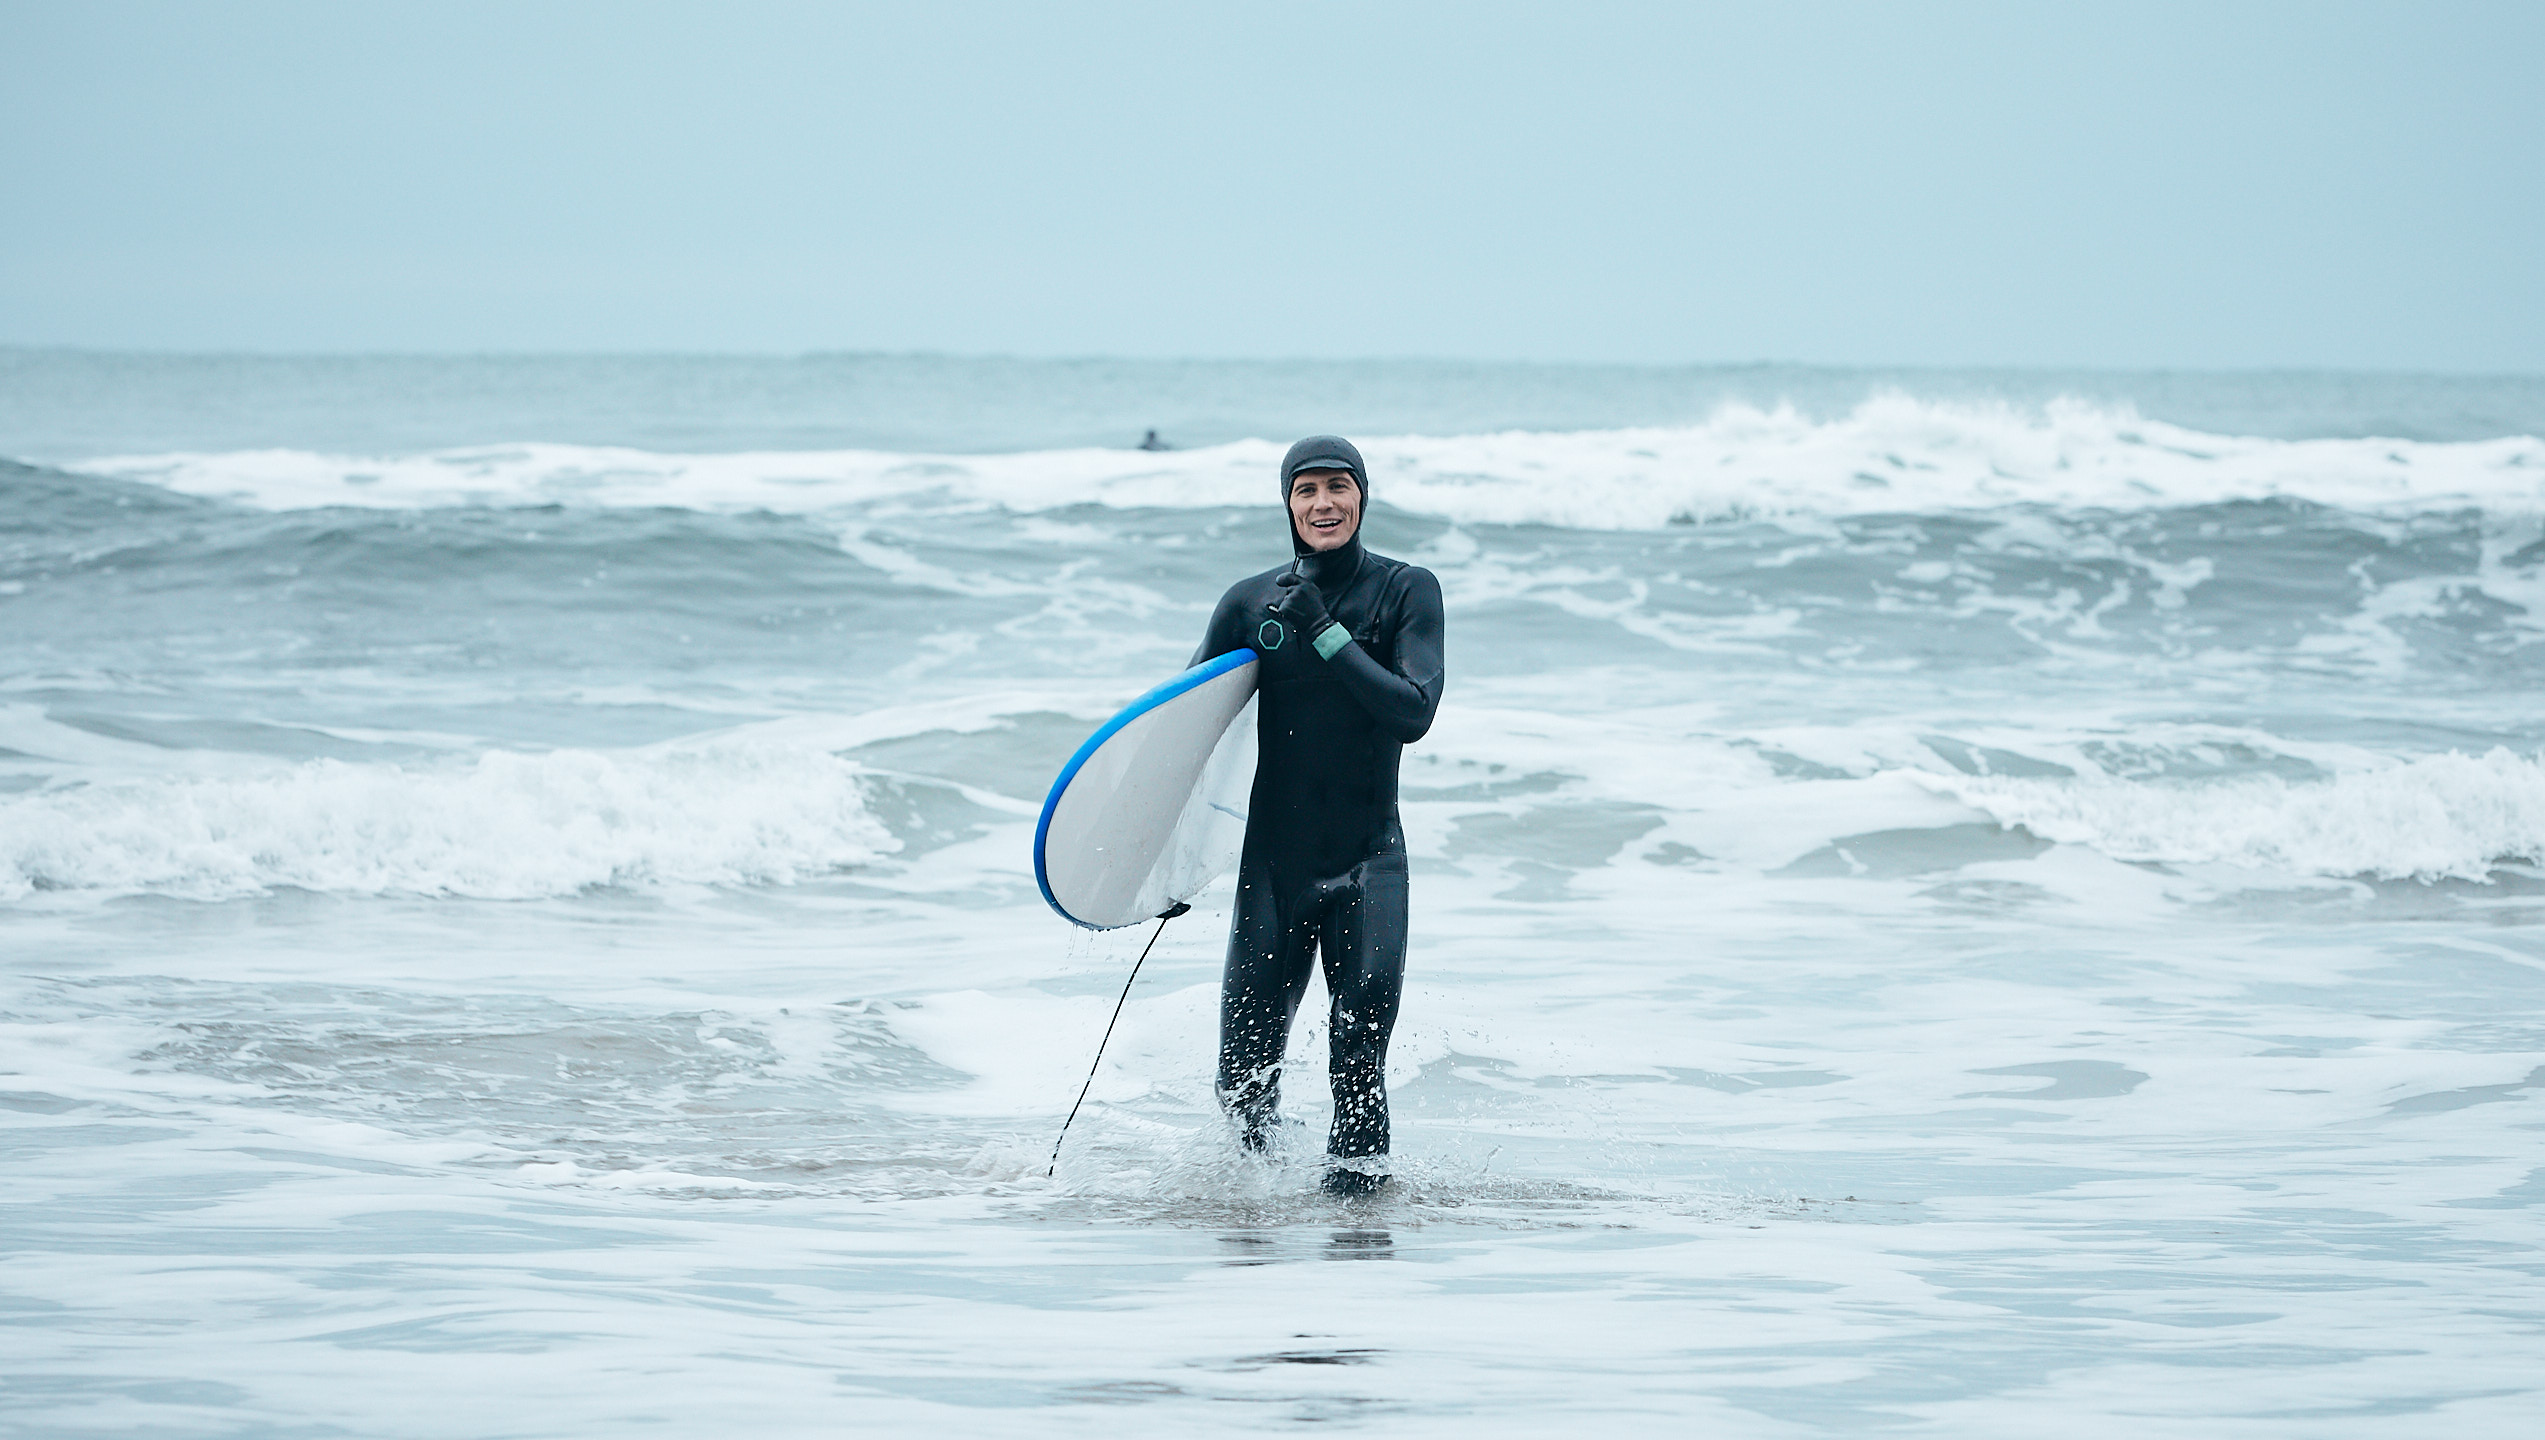 OR_Surf_0251